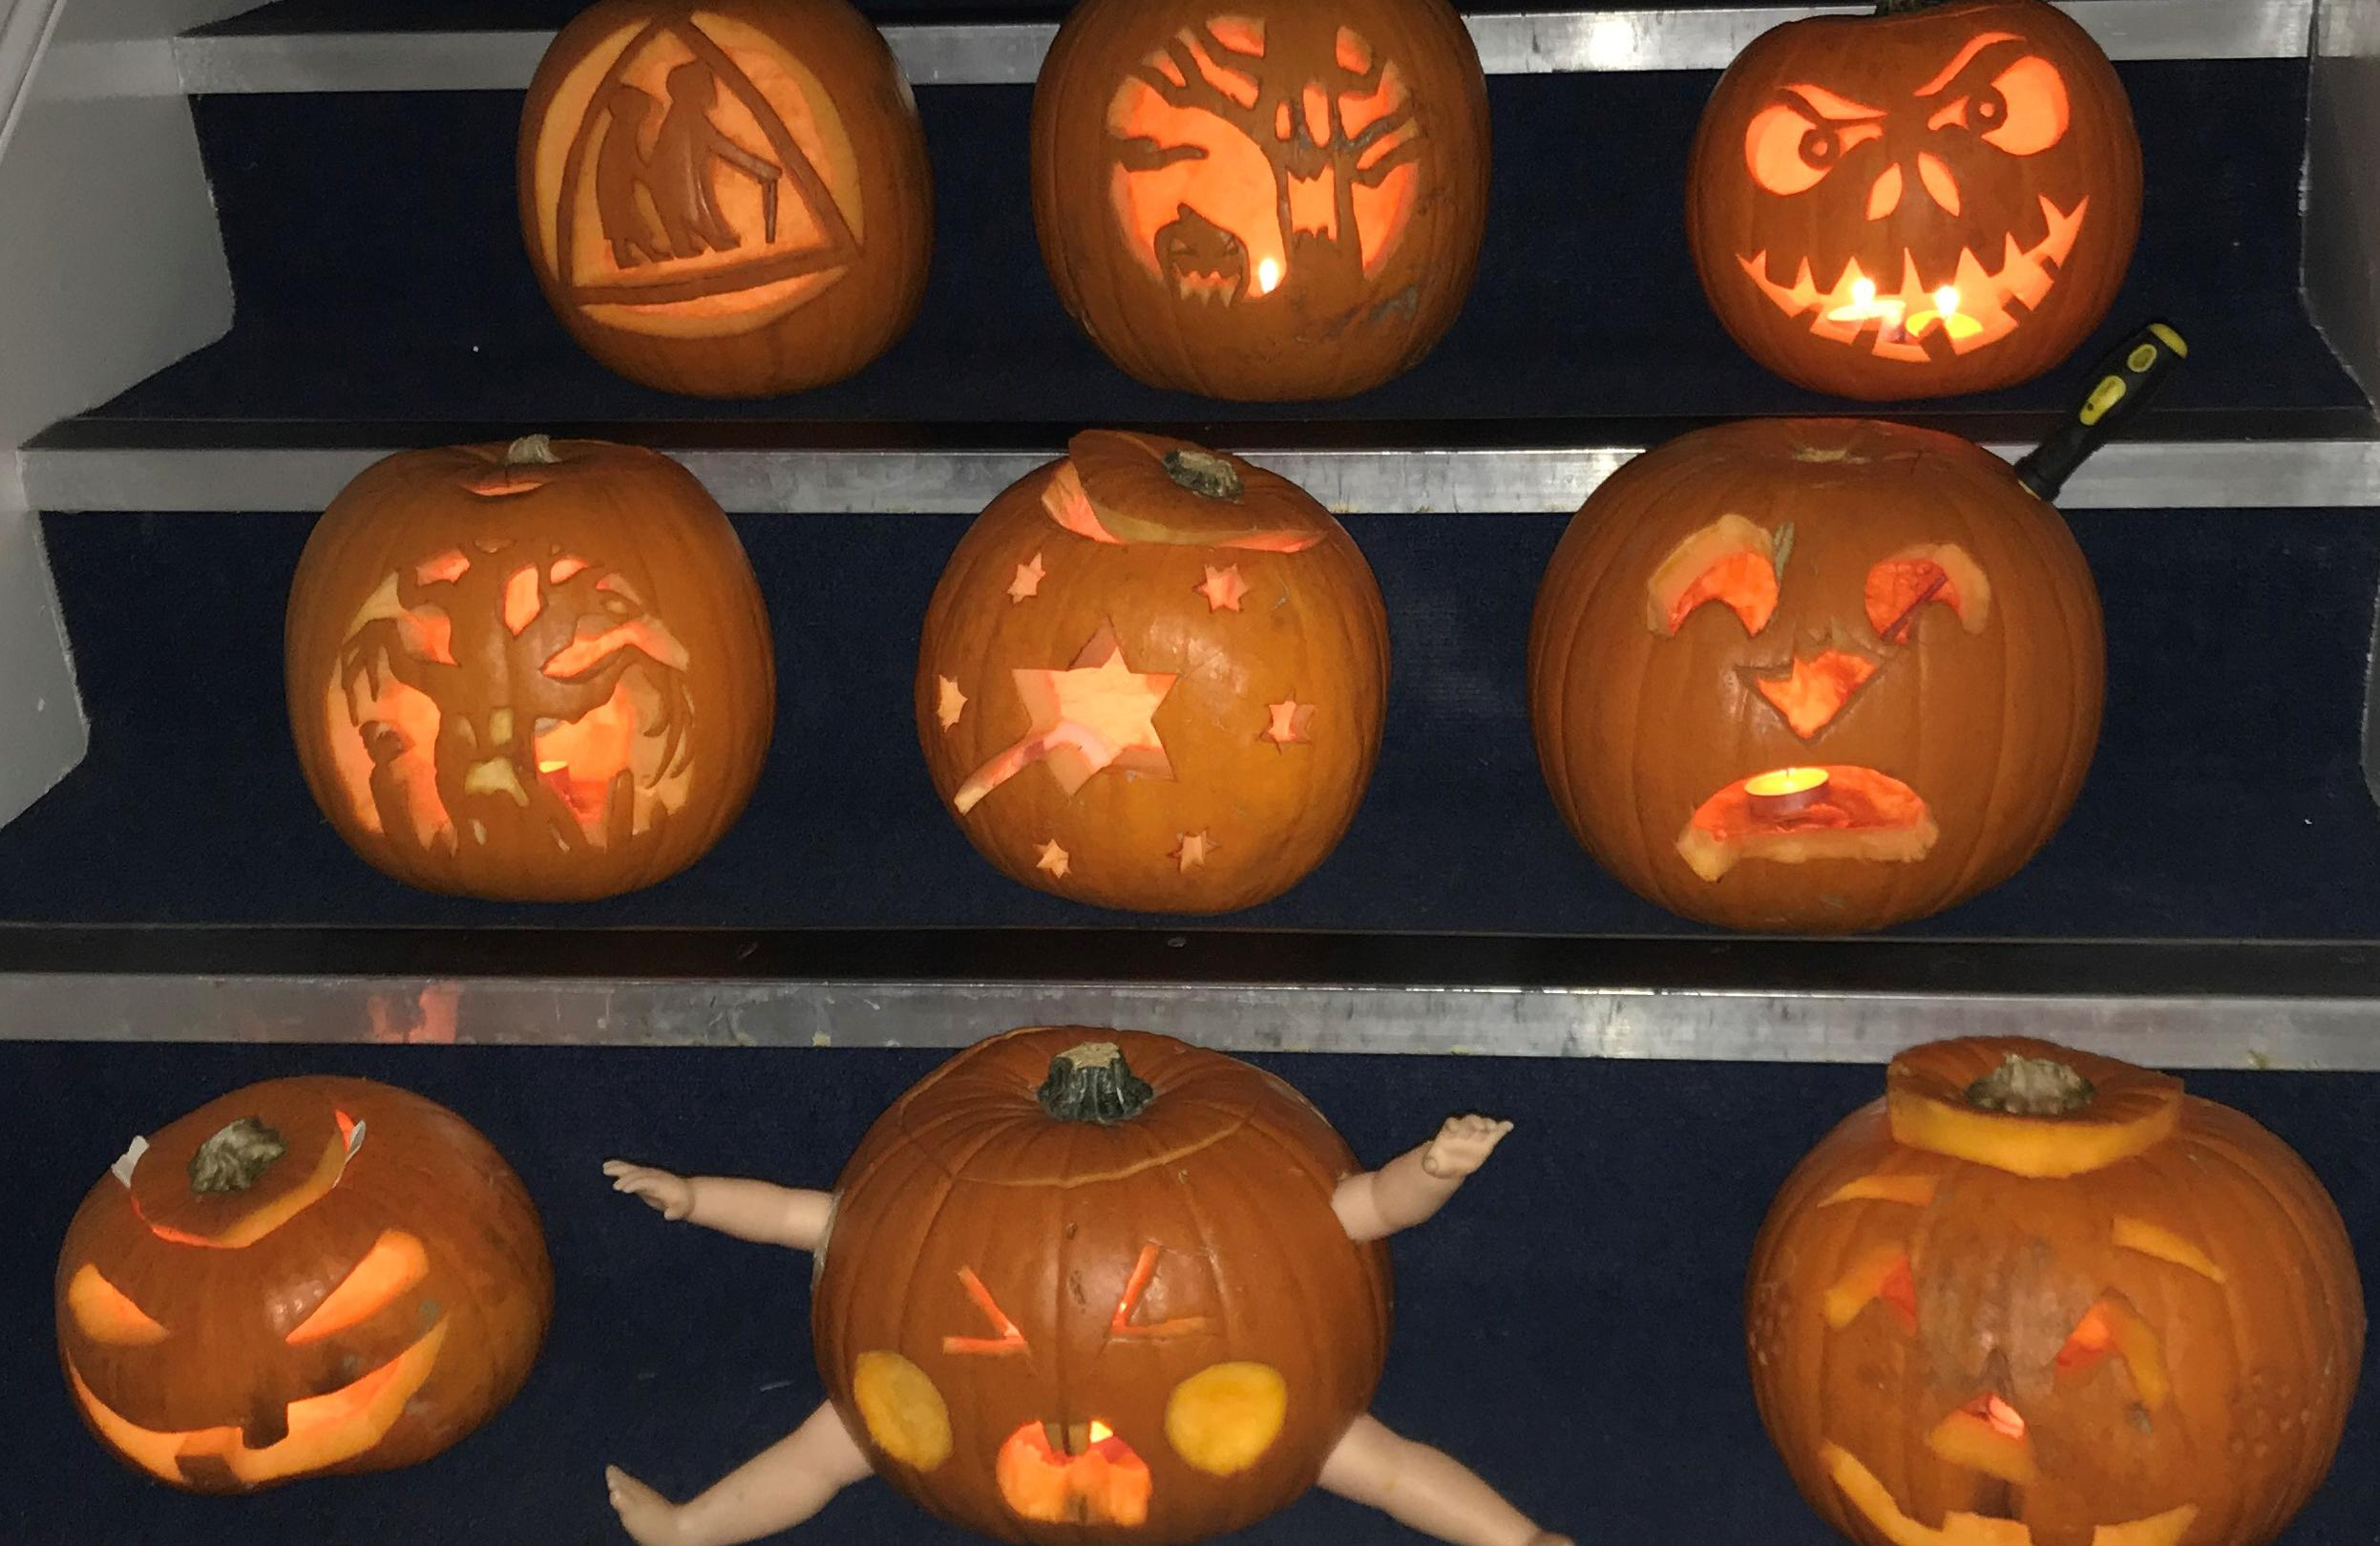 All our pumpkins on the stairs